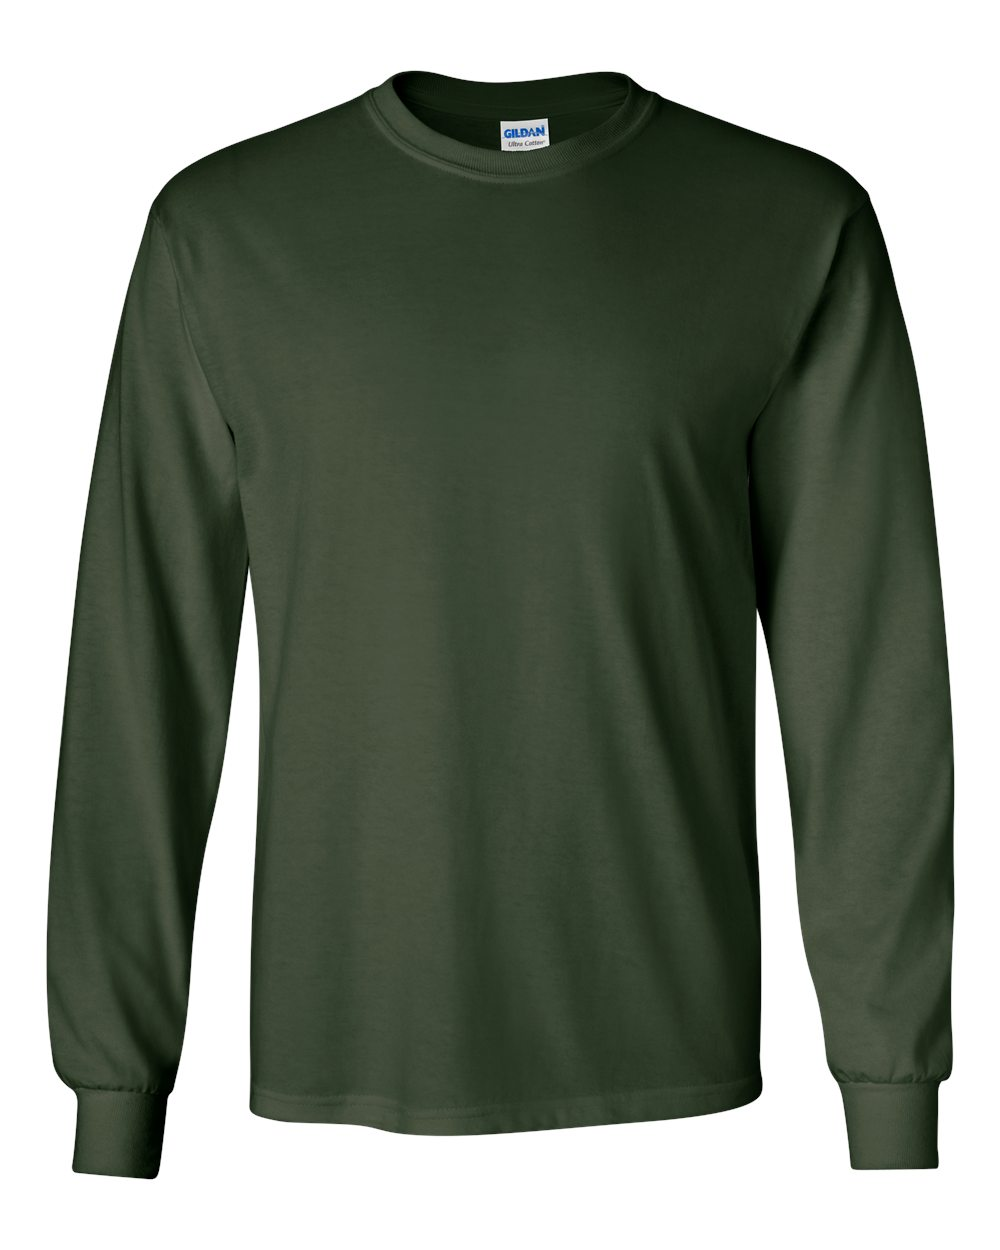 Gildan_2400_Forest_Green_Front_High.jpg